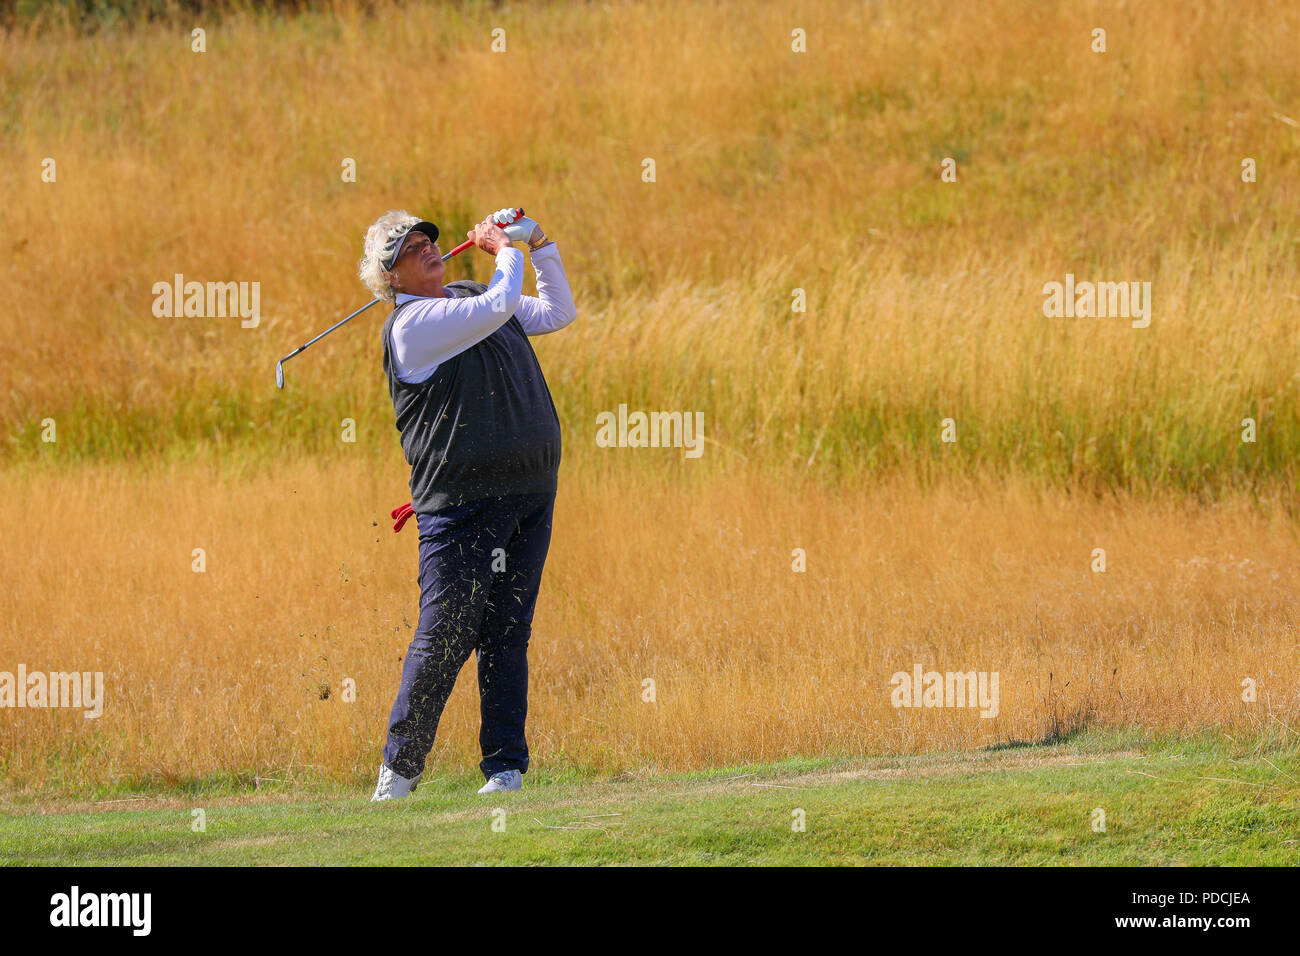 Gleneagles PGA Centenary Course, Perthshire, UK. 9th August 2018. Georgia Hall and Laura Davies, representing Great Britain (1) teed off at 9.00am in the game against Isi Gabsa and Leticia Ras-Anderica who were playing for Germany (2). Credit: Findlay/Alamy Live News - Stock Image